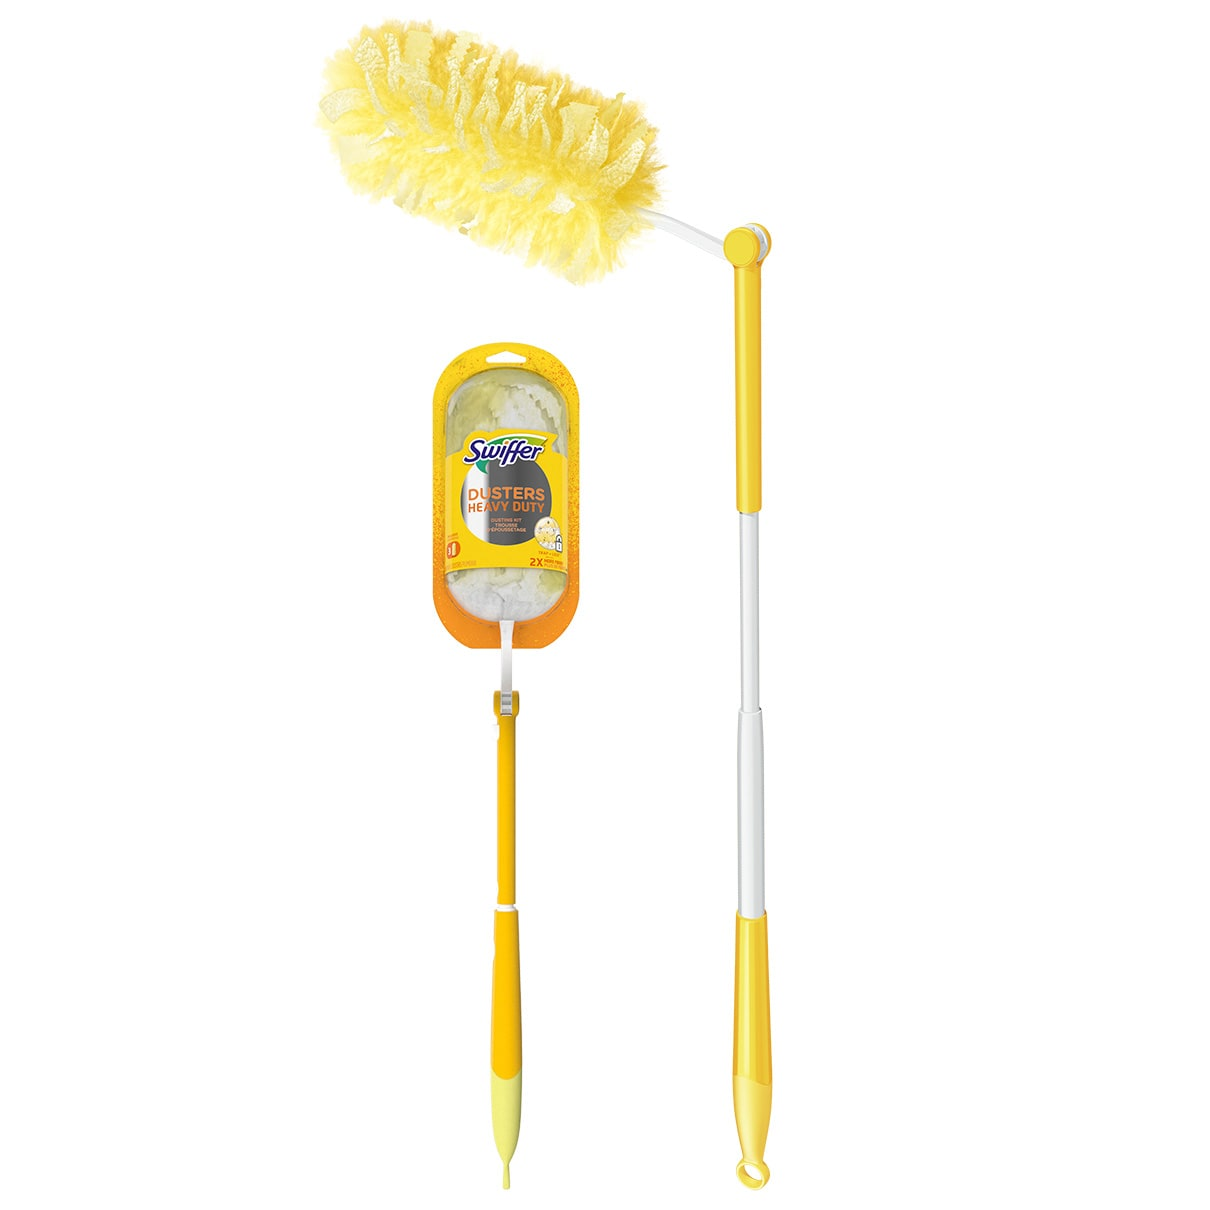 Swiffer Duster Heavy Duty Starter Kit Extended Handle OHB